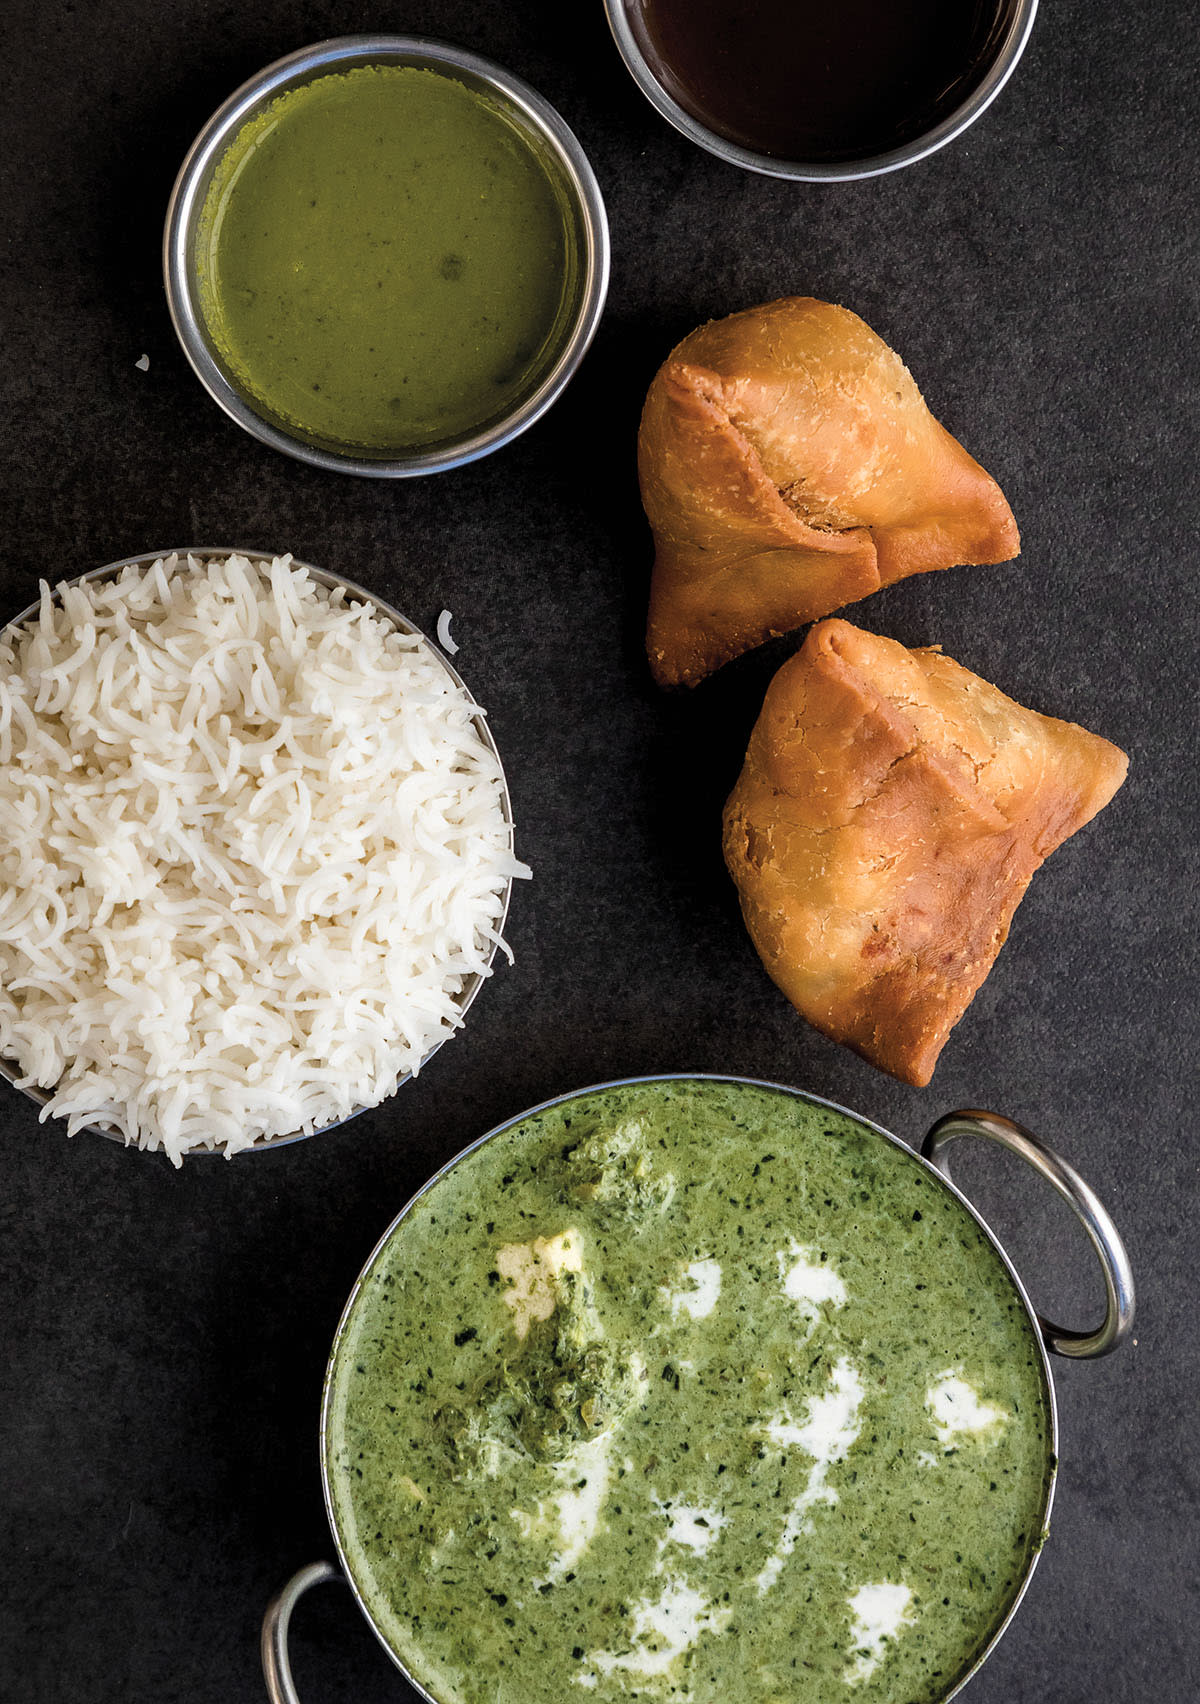 An overhead view of various Indian dishes